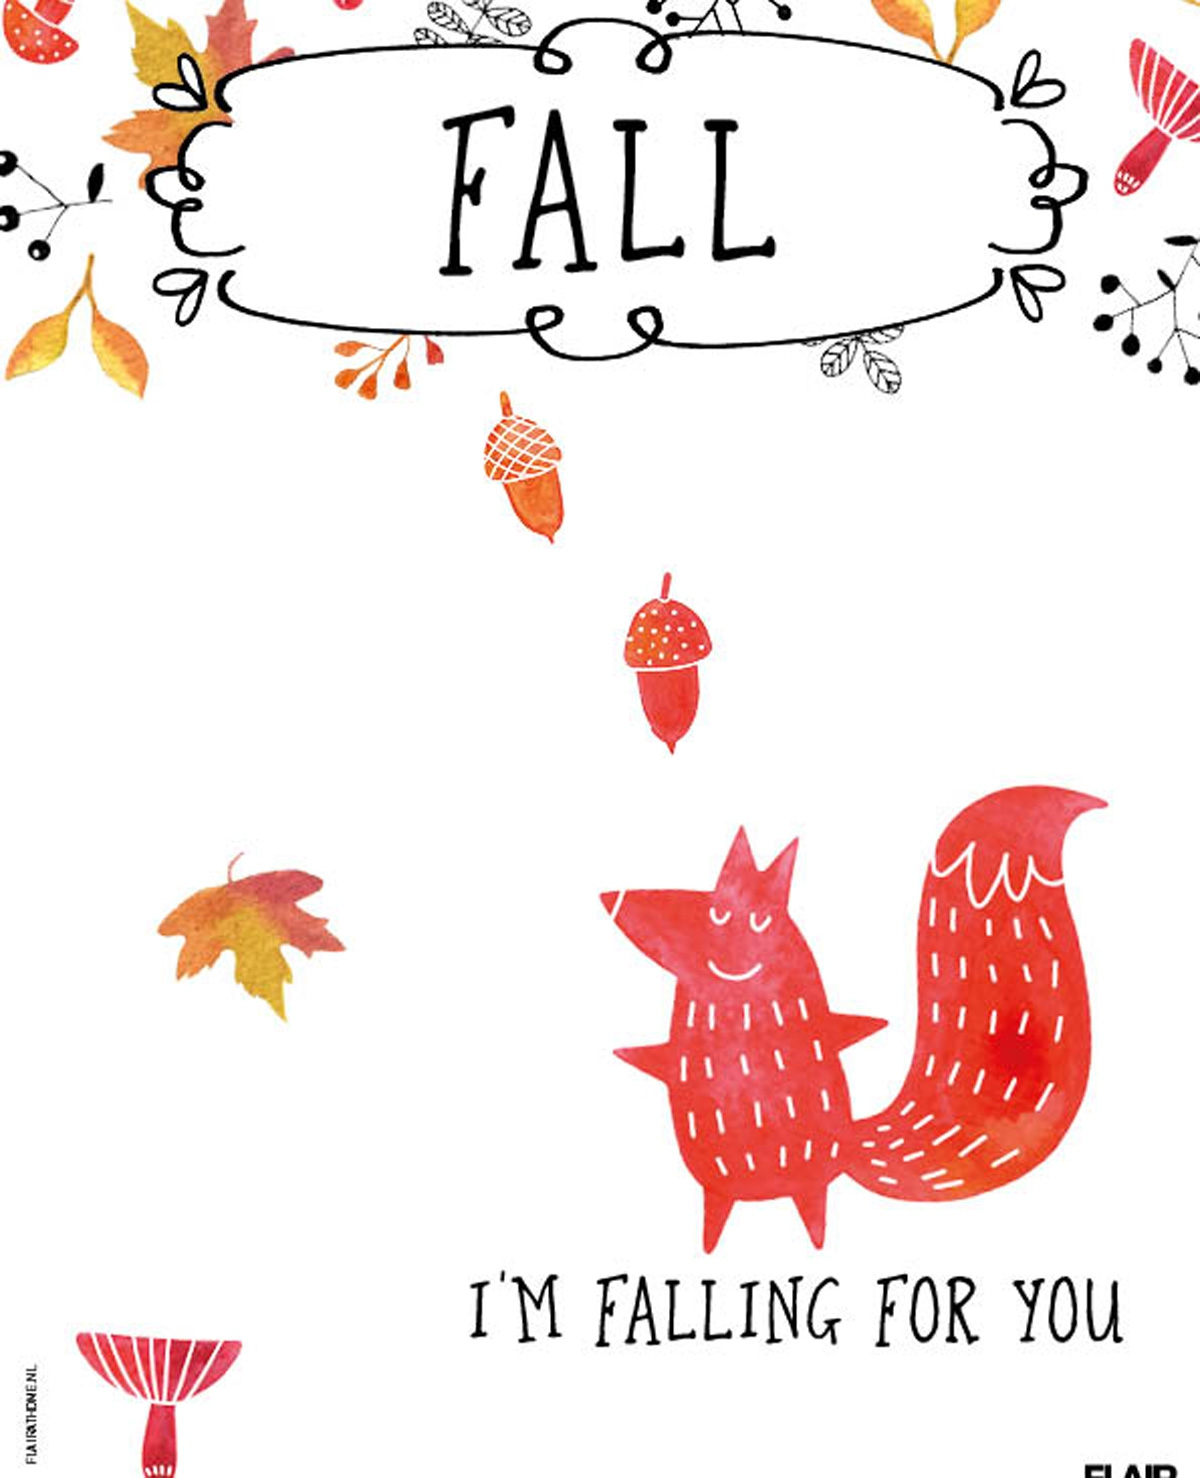 Fall, i'm falling for you